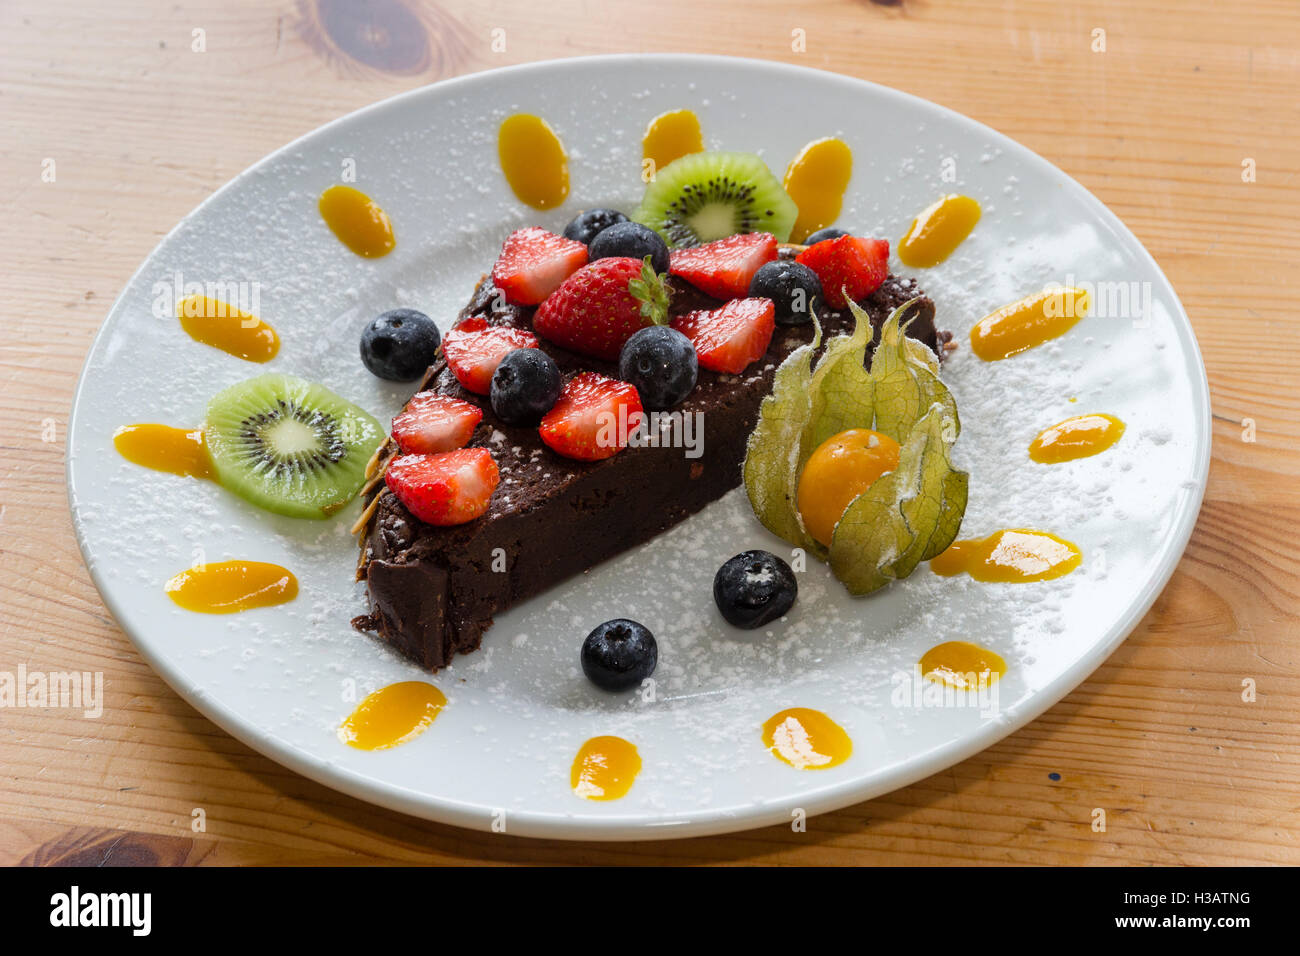 death-by-garden-house-rich-chocolate-cake-decorated-with-fruit-and-H3ATNG.jpg